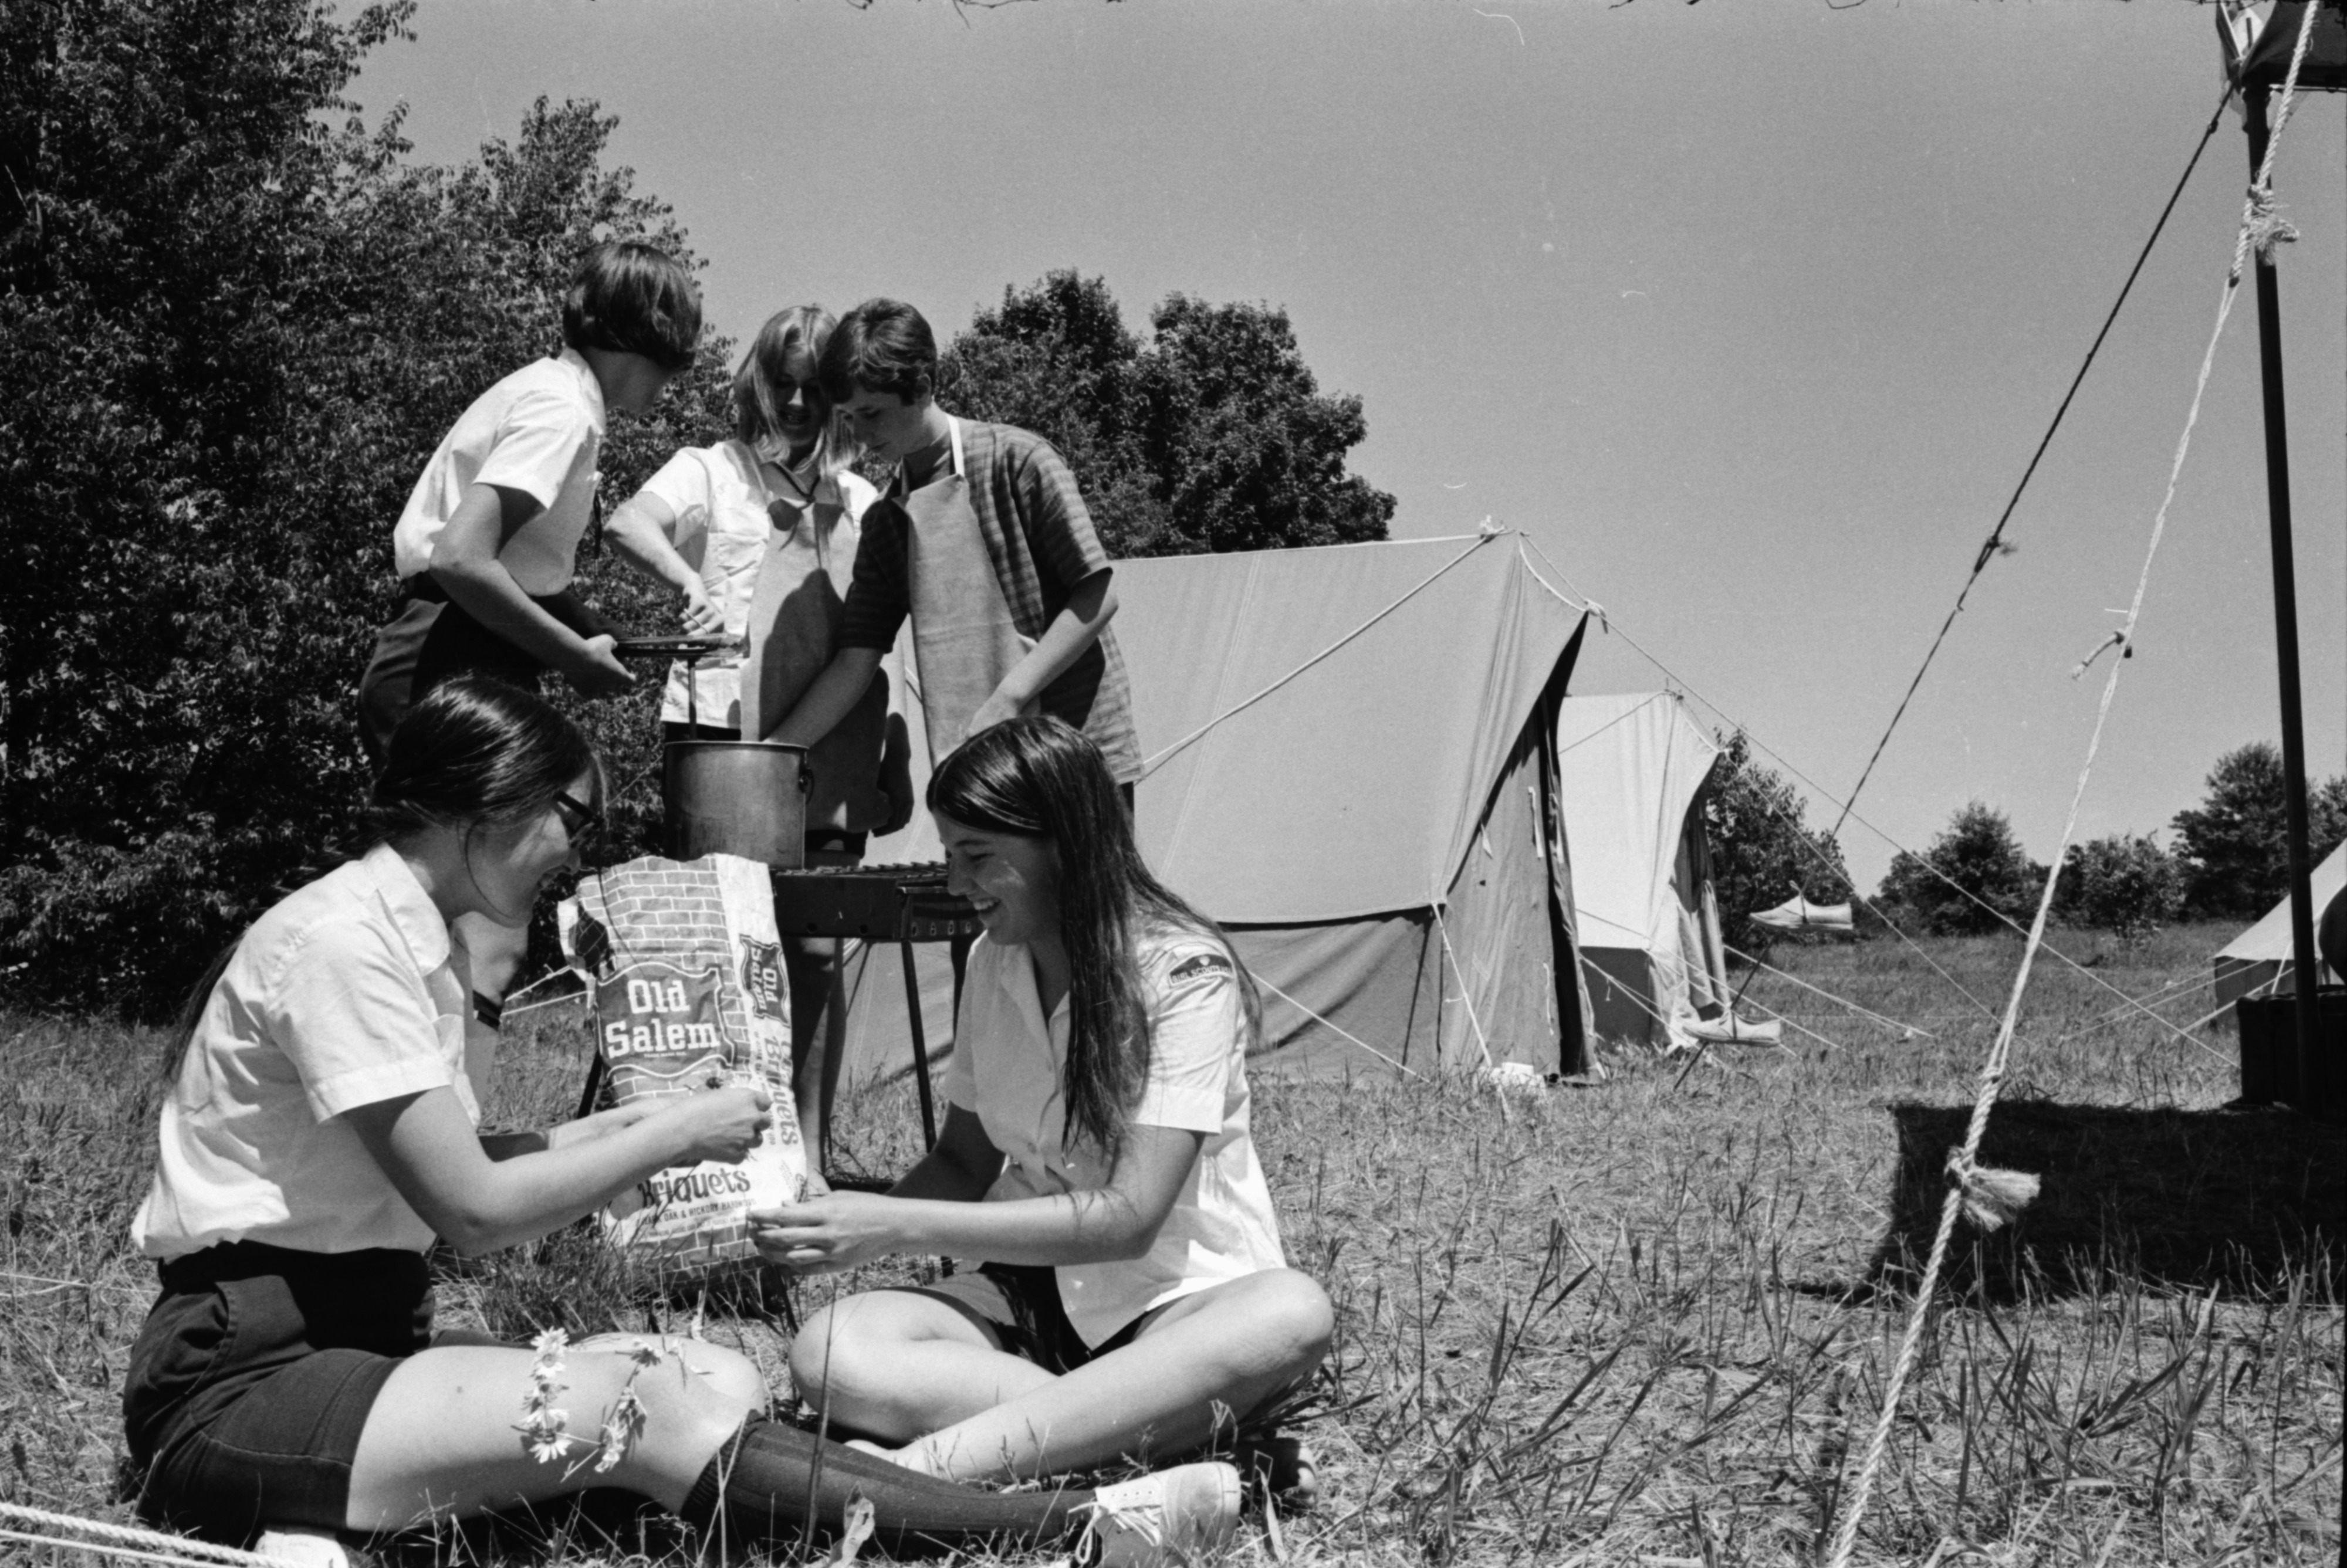 Girl Scouts at Camp, June 1969 image